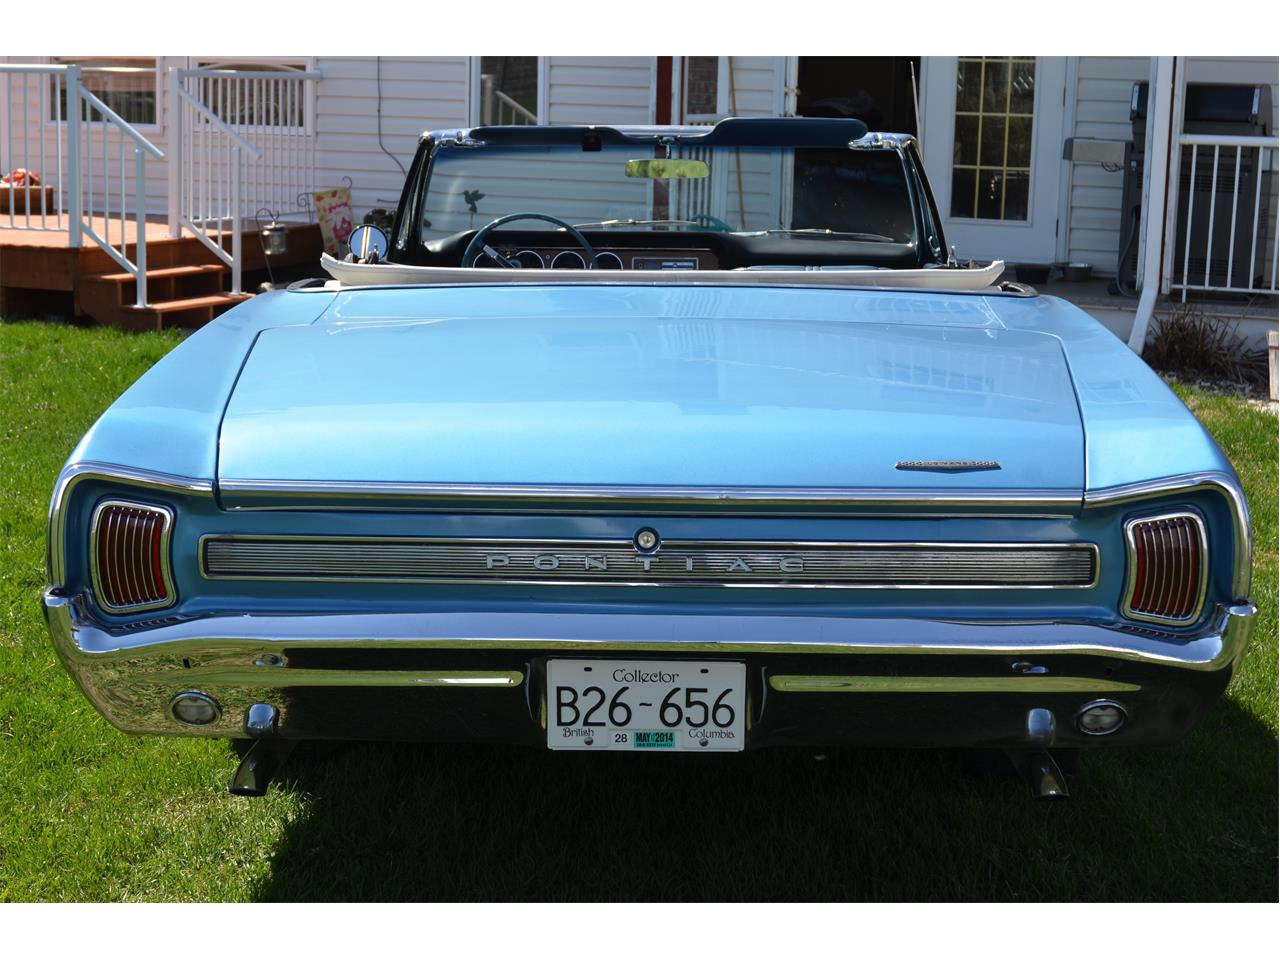 Large Picture of Classic '66 Pontiac LeMans located in Prince George British Columbia - $32,000.00 Offered by a Private Seller - GCAH